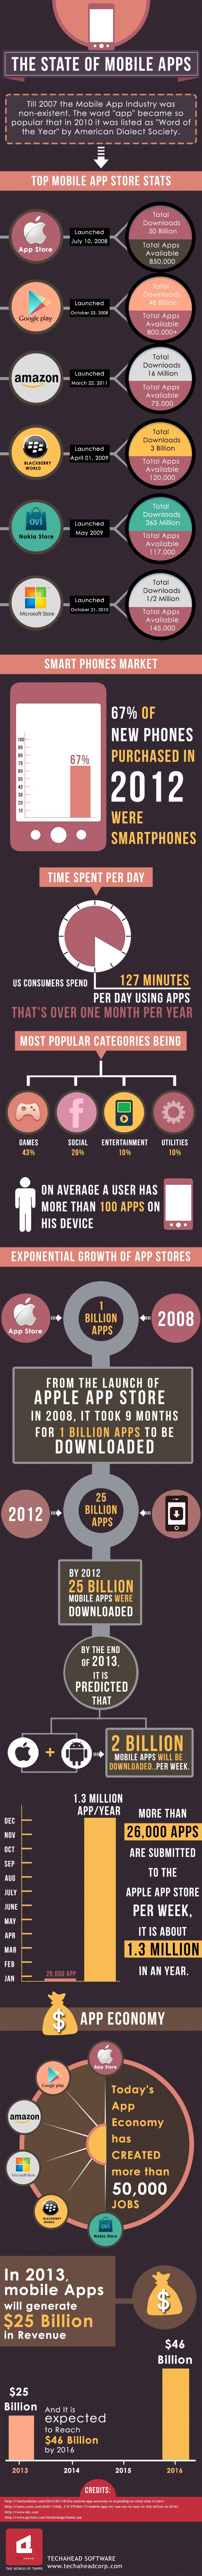 The State of #Mobile Apps